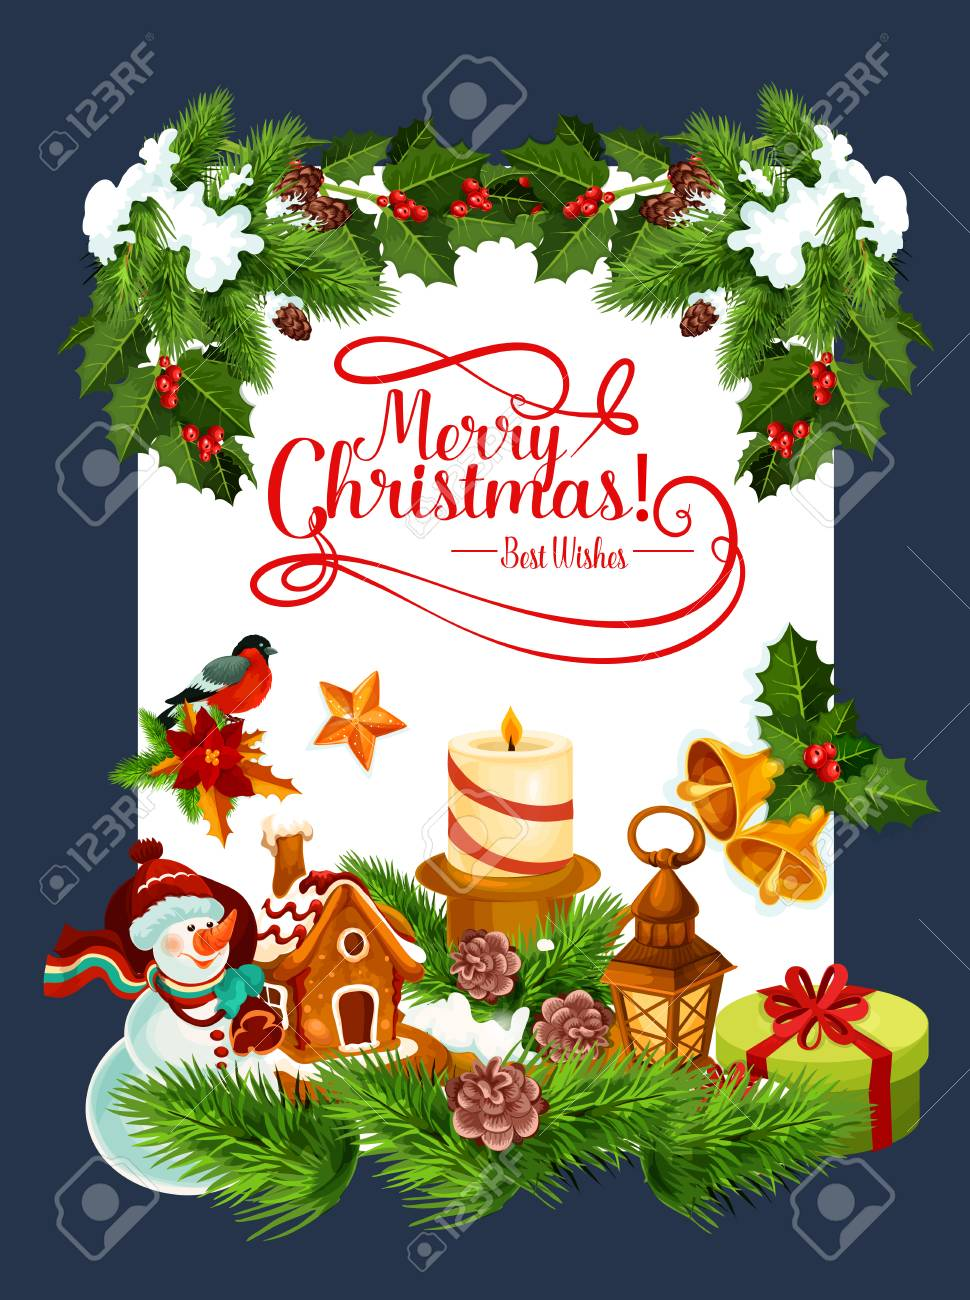 Merry Christmas Wishes Greeting Cards.Merry Christmas Wishes Greeting Card Of Winter Holiday Decoration